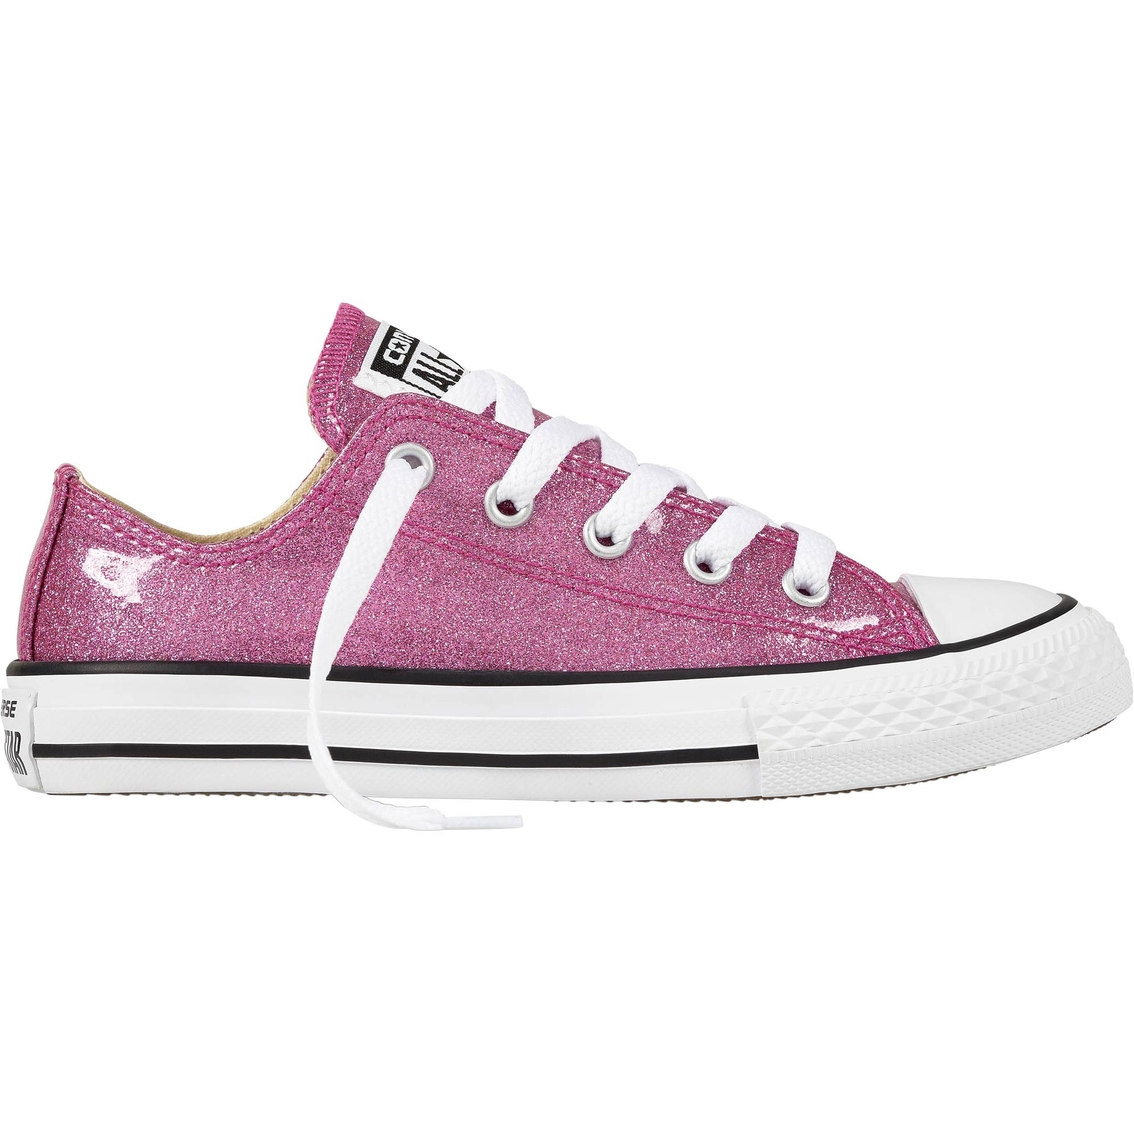 298121f4ba6c Converse Girls Chuck Taylor All Star Oxford Sneakers